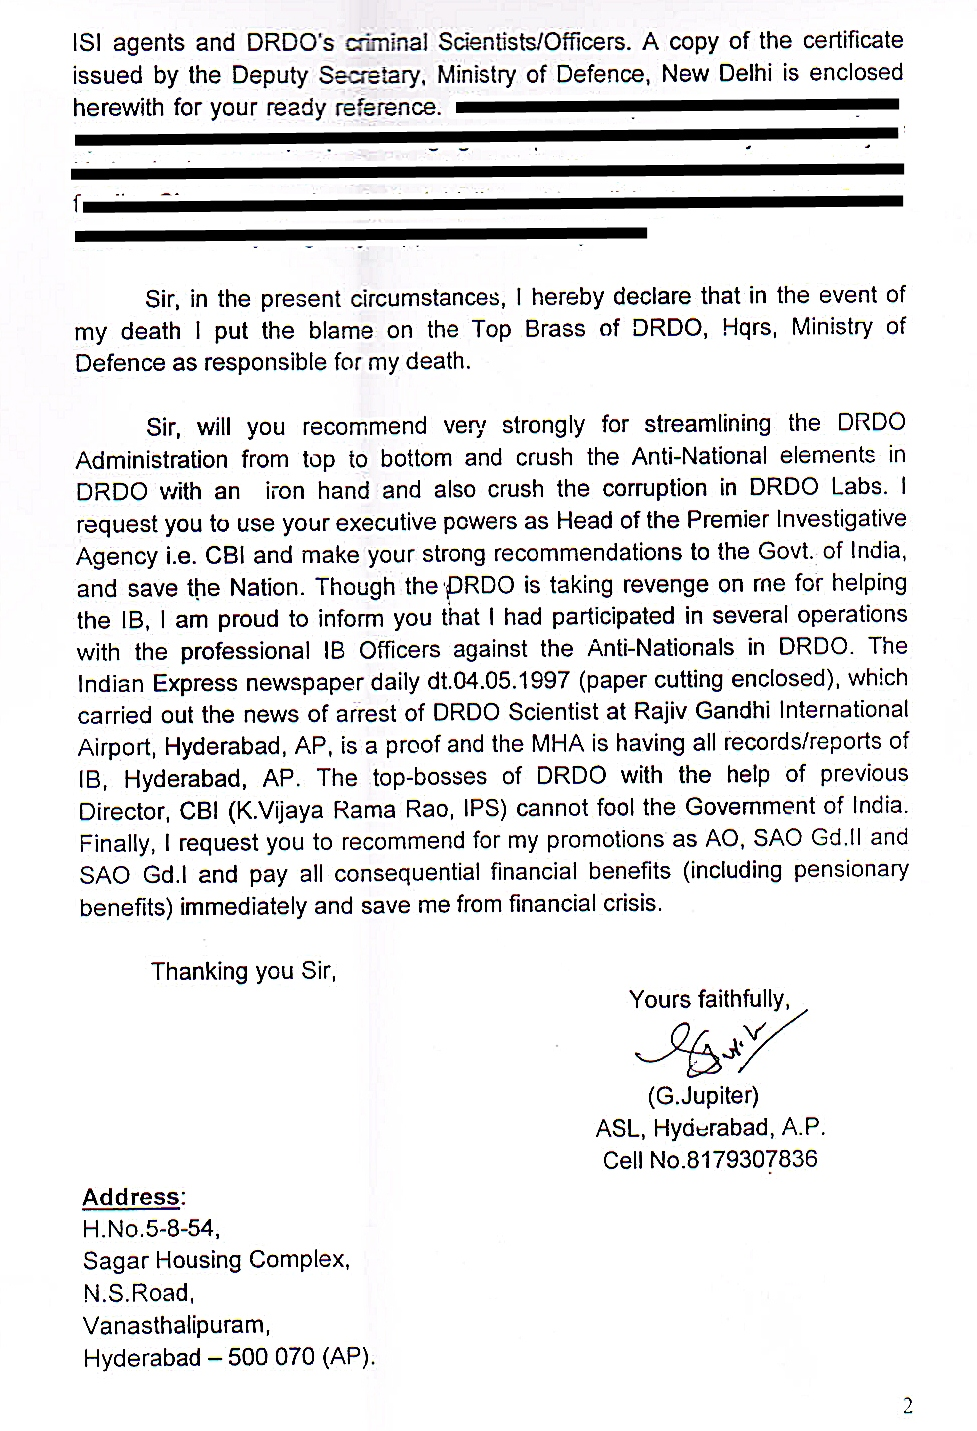 Letter of Sh G Jupiter address to Sh Ranjit Sinha, Director, CBI